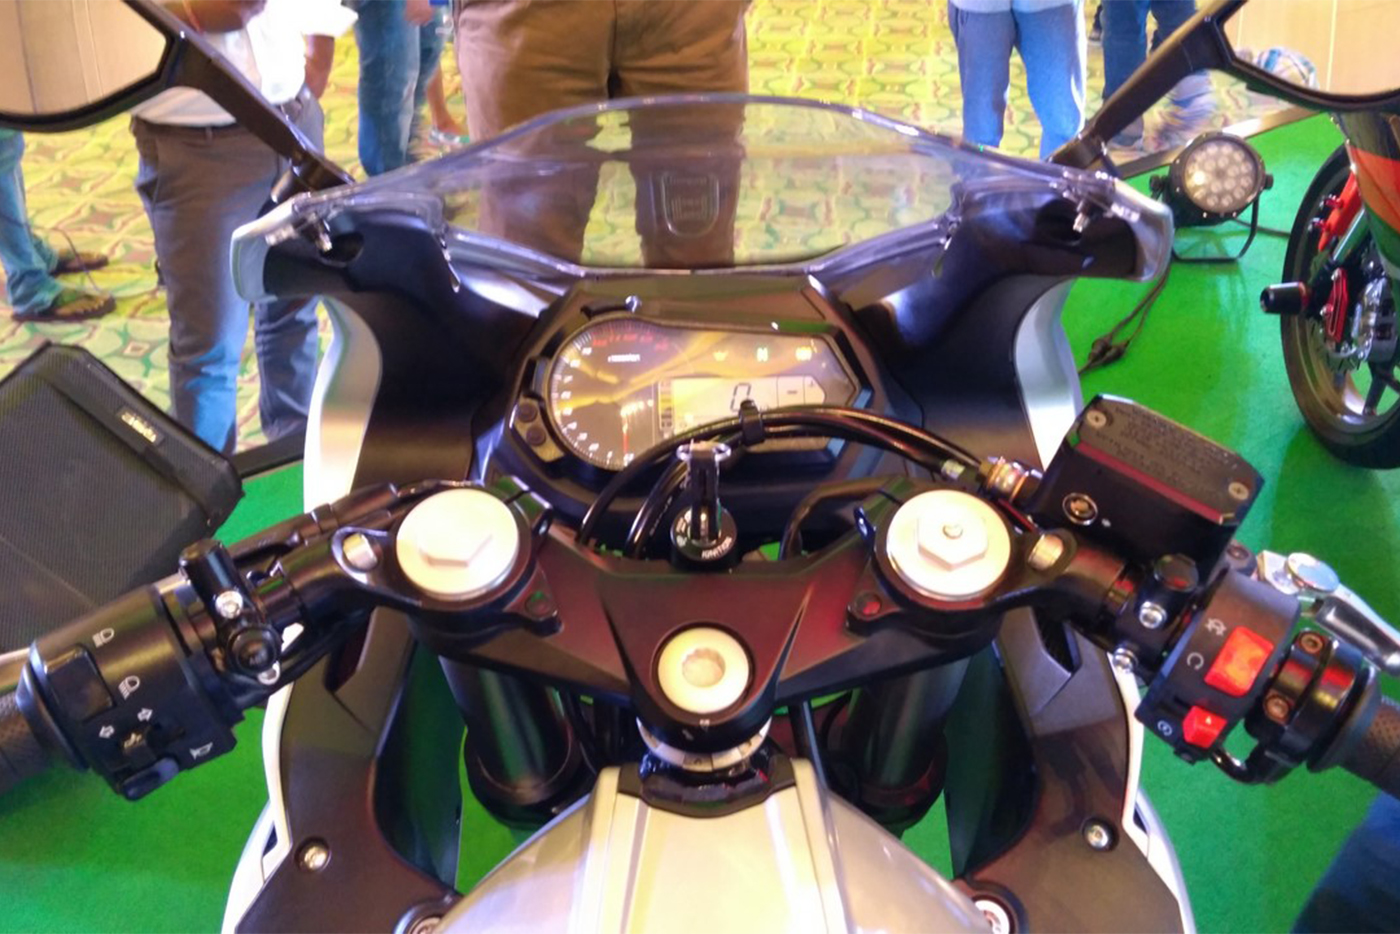 dsk-benelli-302r-handlebar-indian-launch.jpg